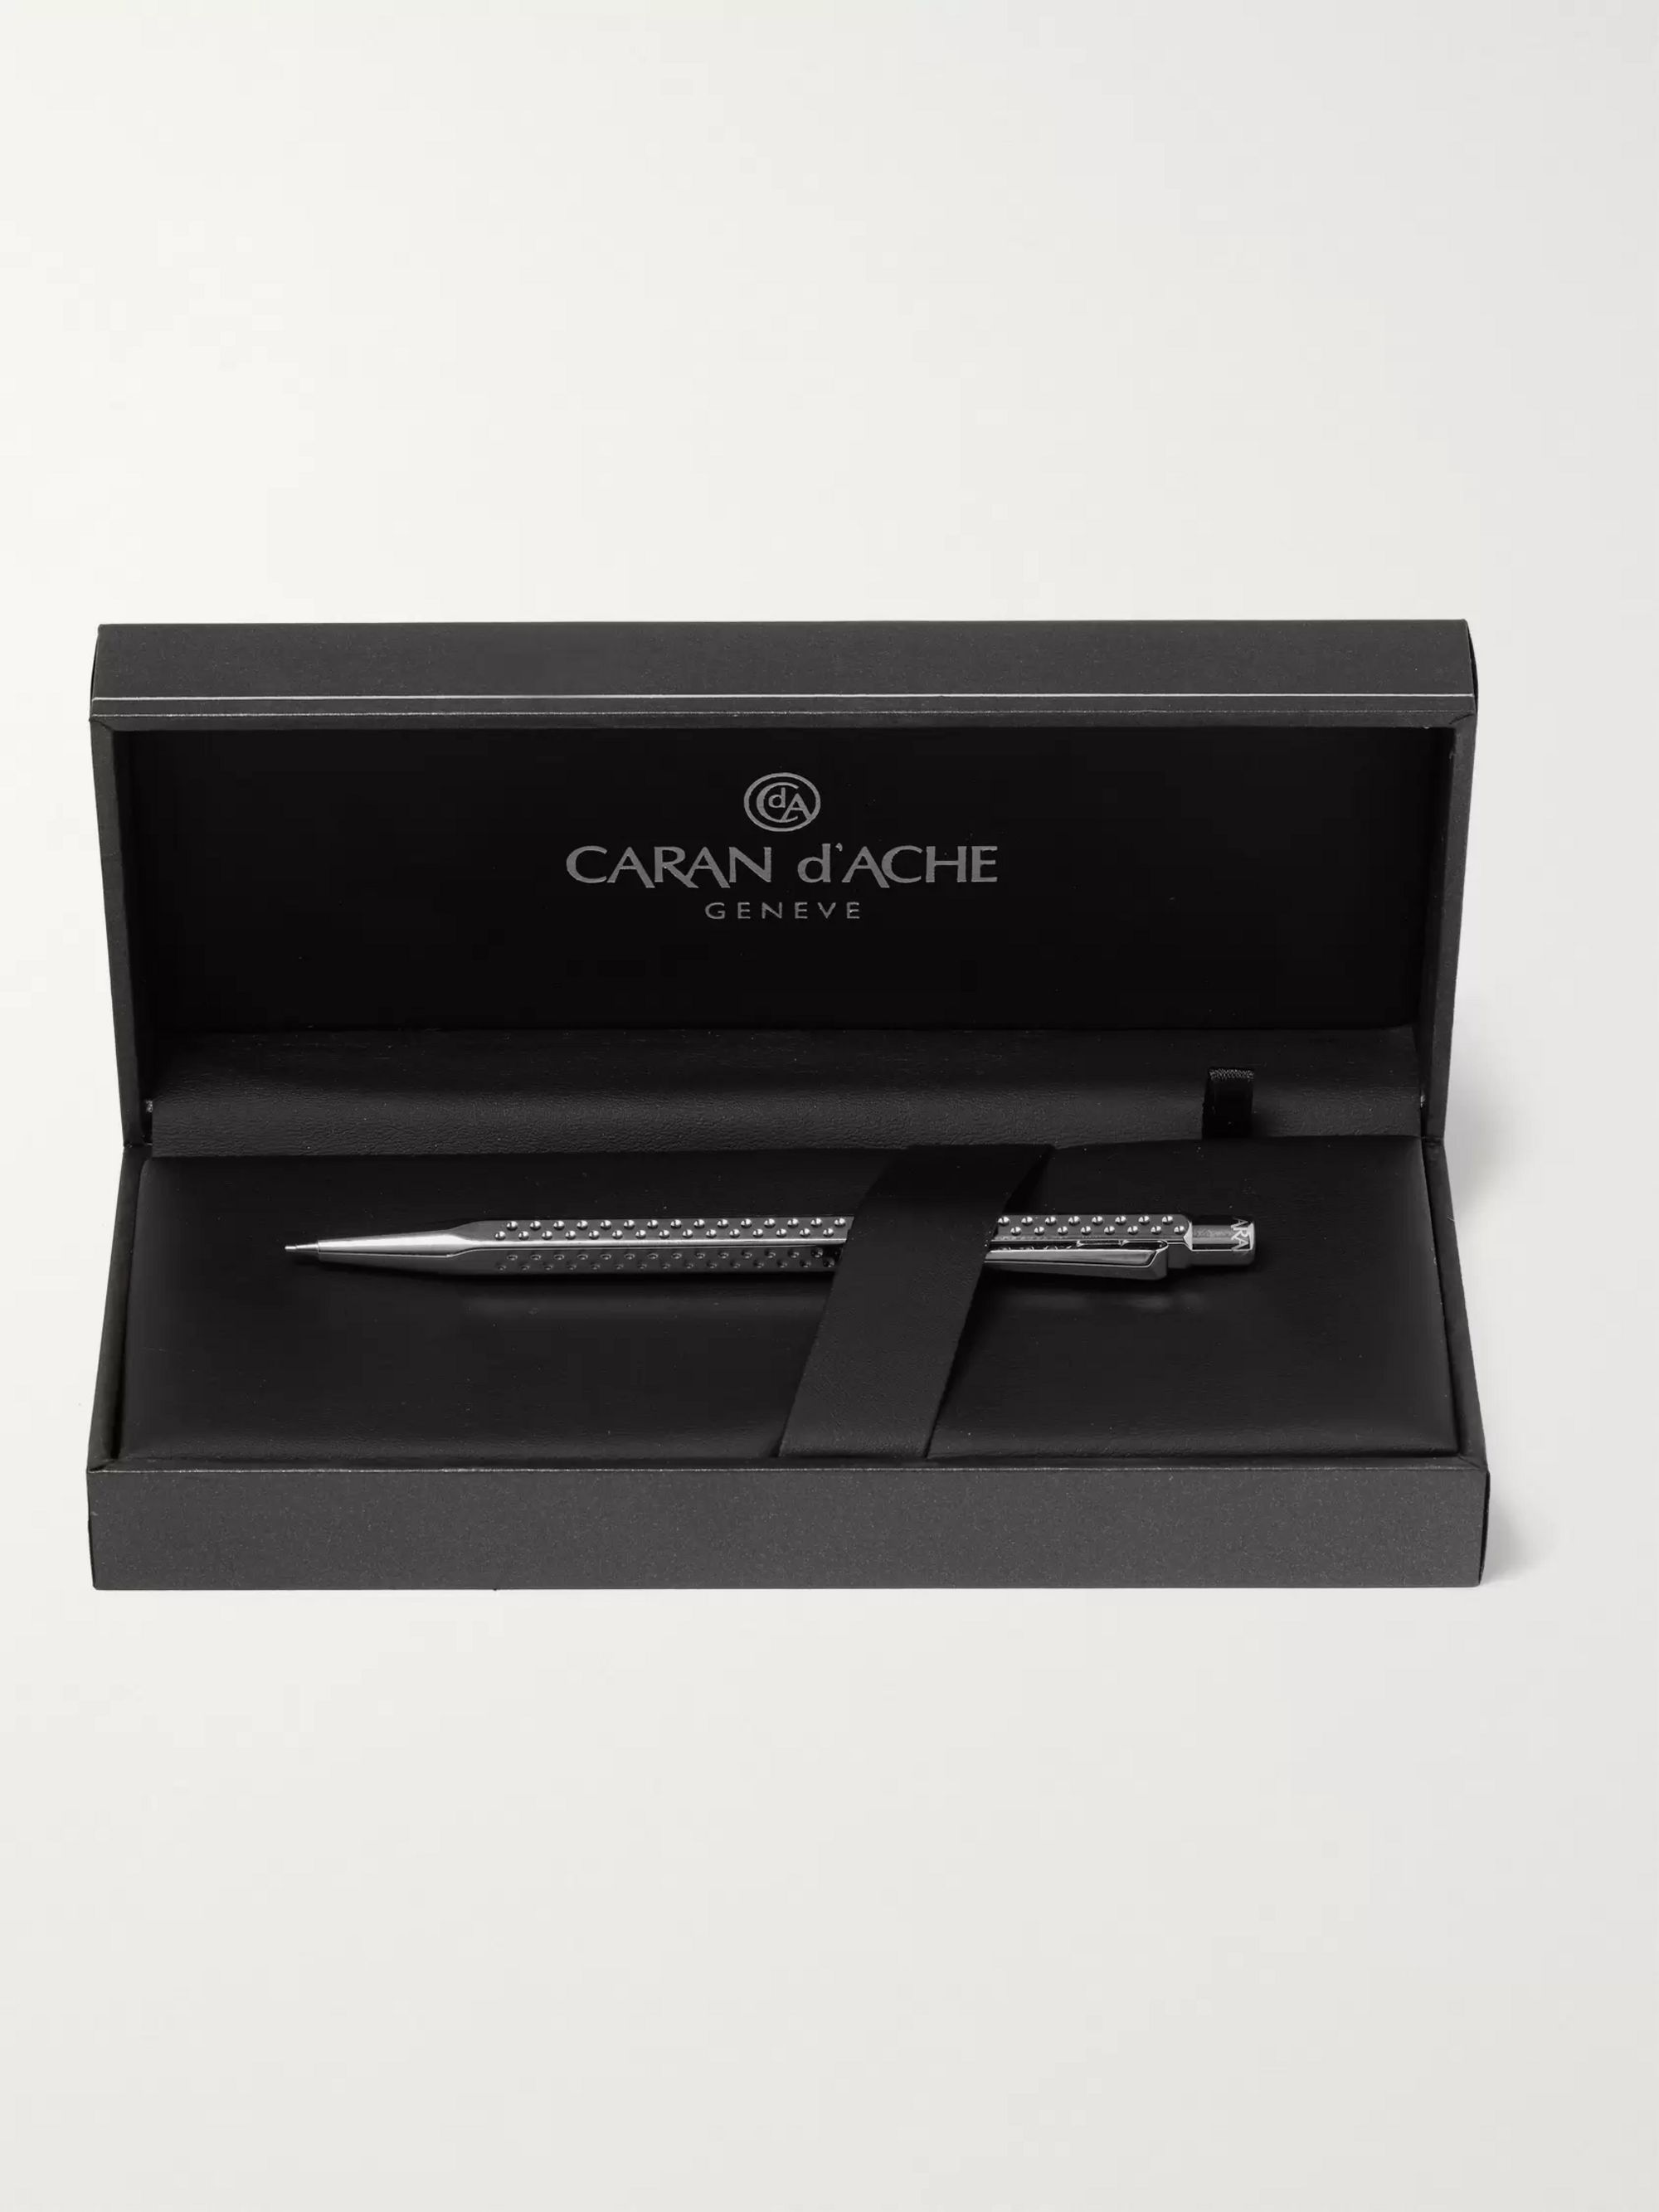 Caran d'Ache Palladium-Coated Ecridor Golf Mechanical Pencil